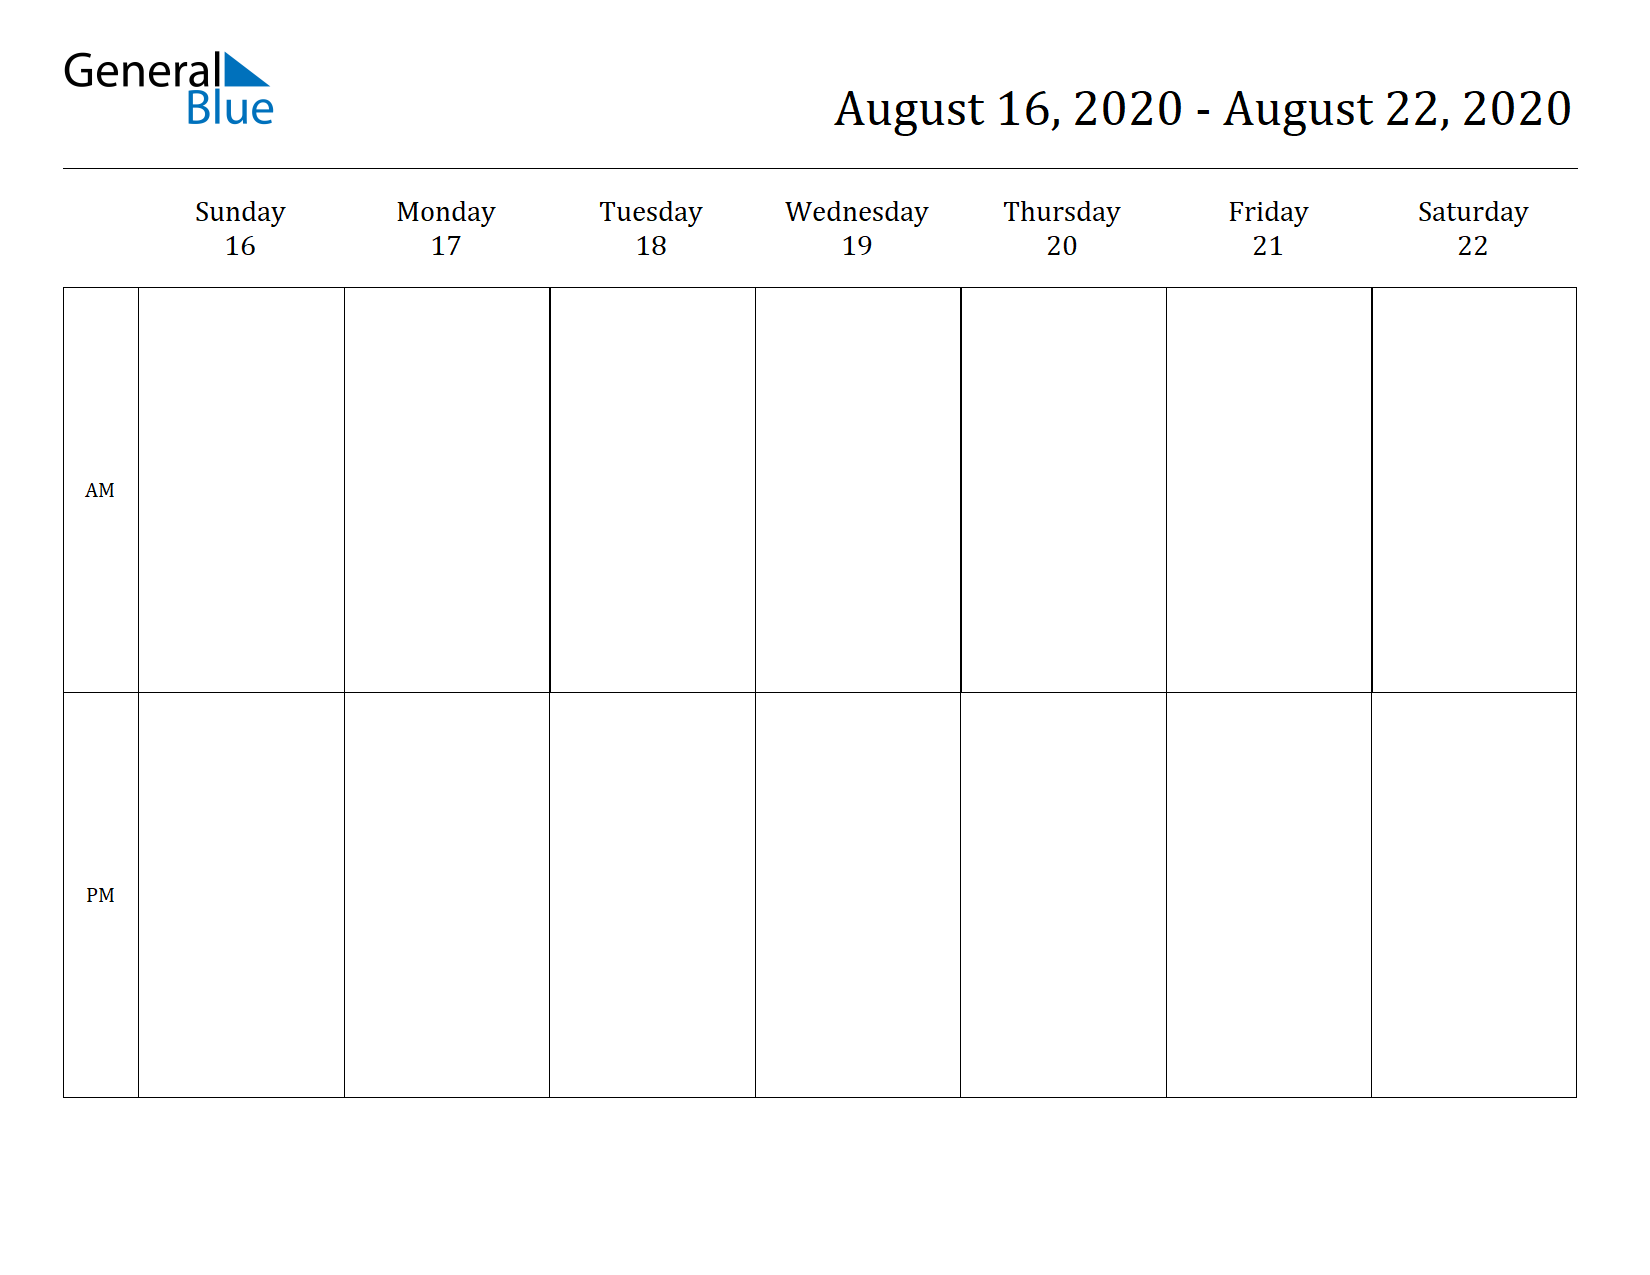 Weekly Calendar for Aug 16, 2020 to Aug 22, 2020